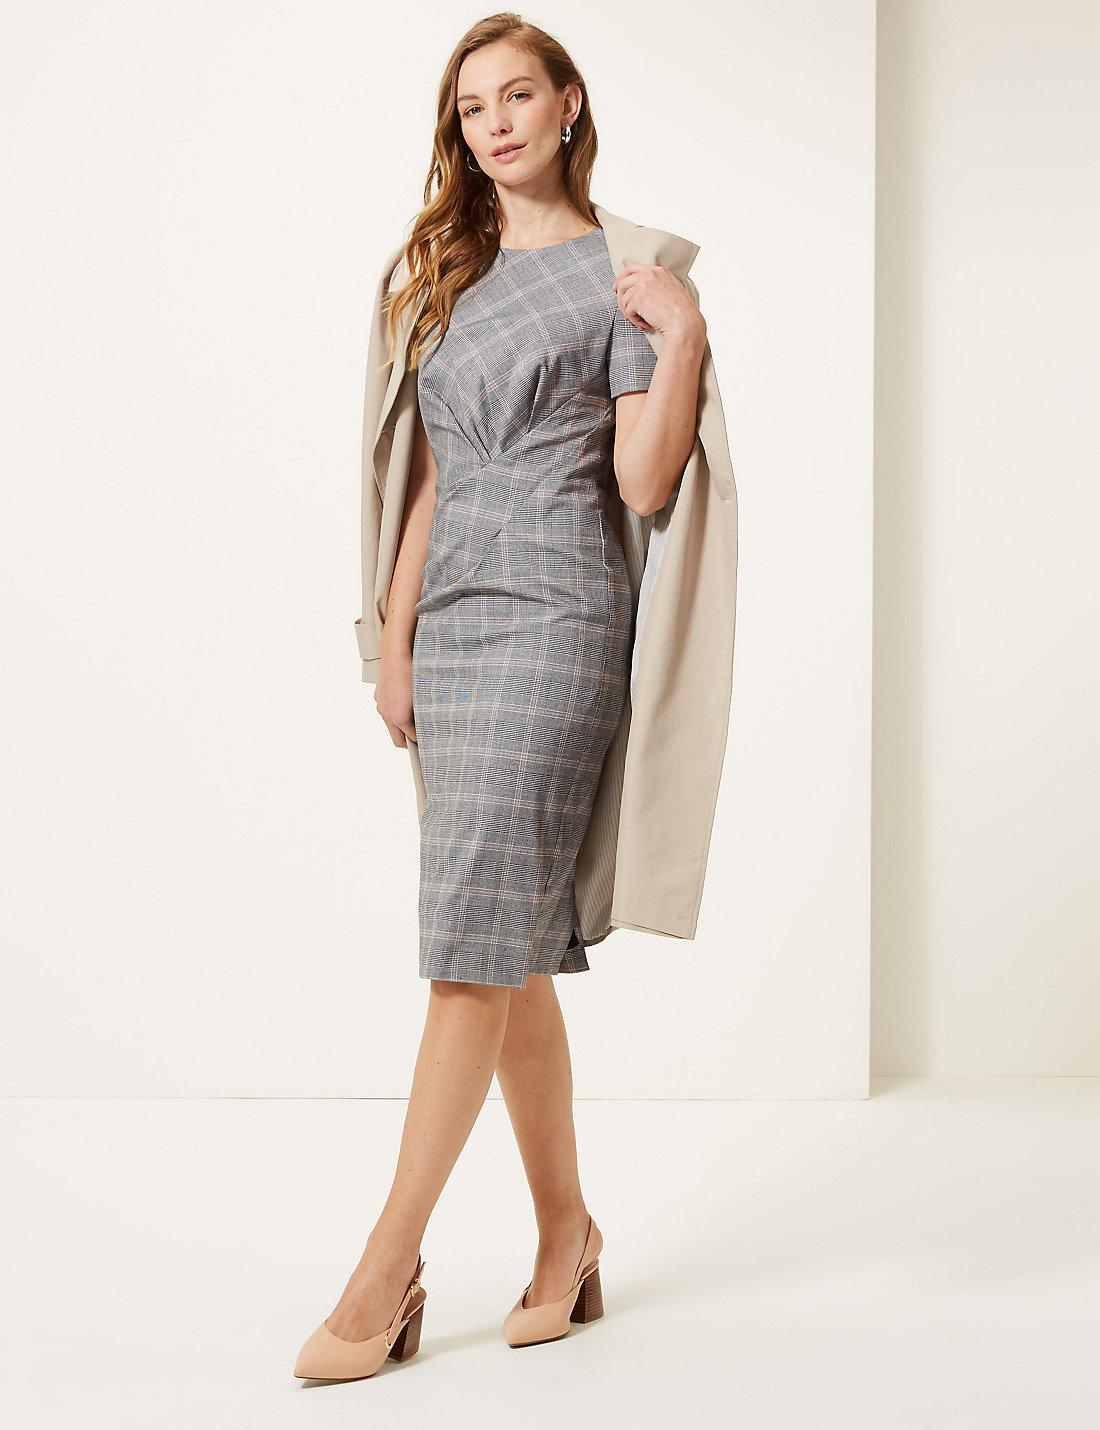 Marks and spencer bodycon dresses and women